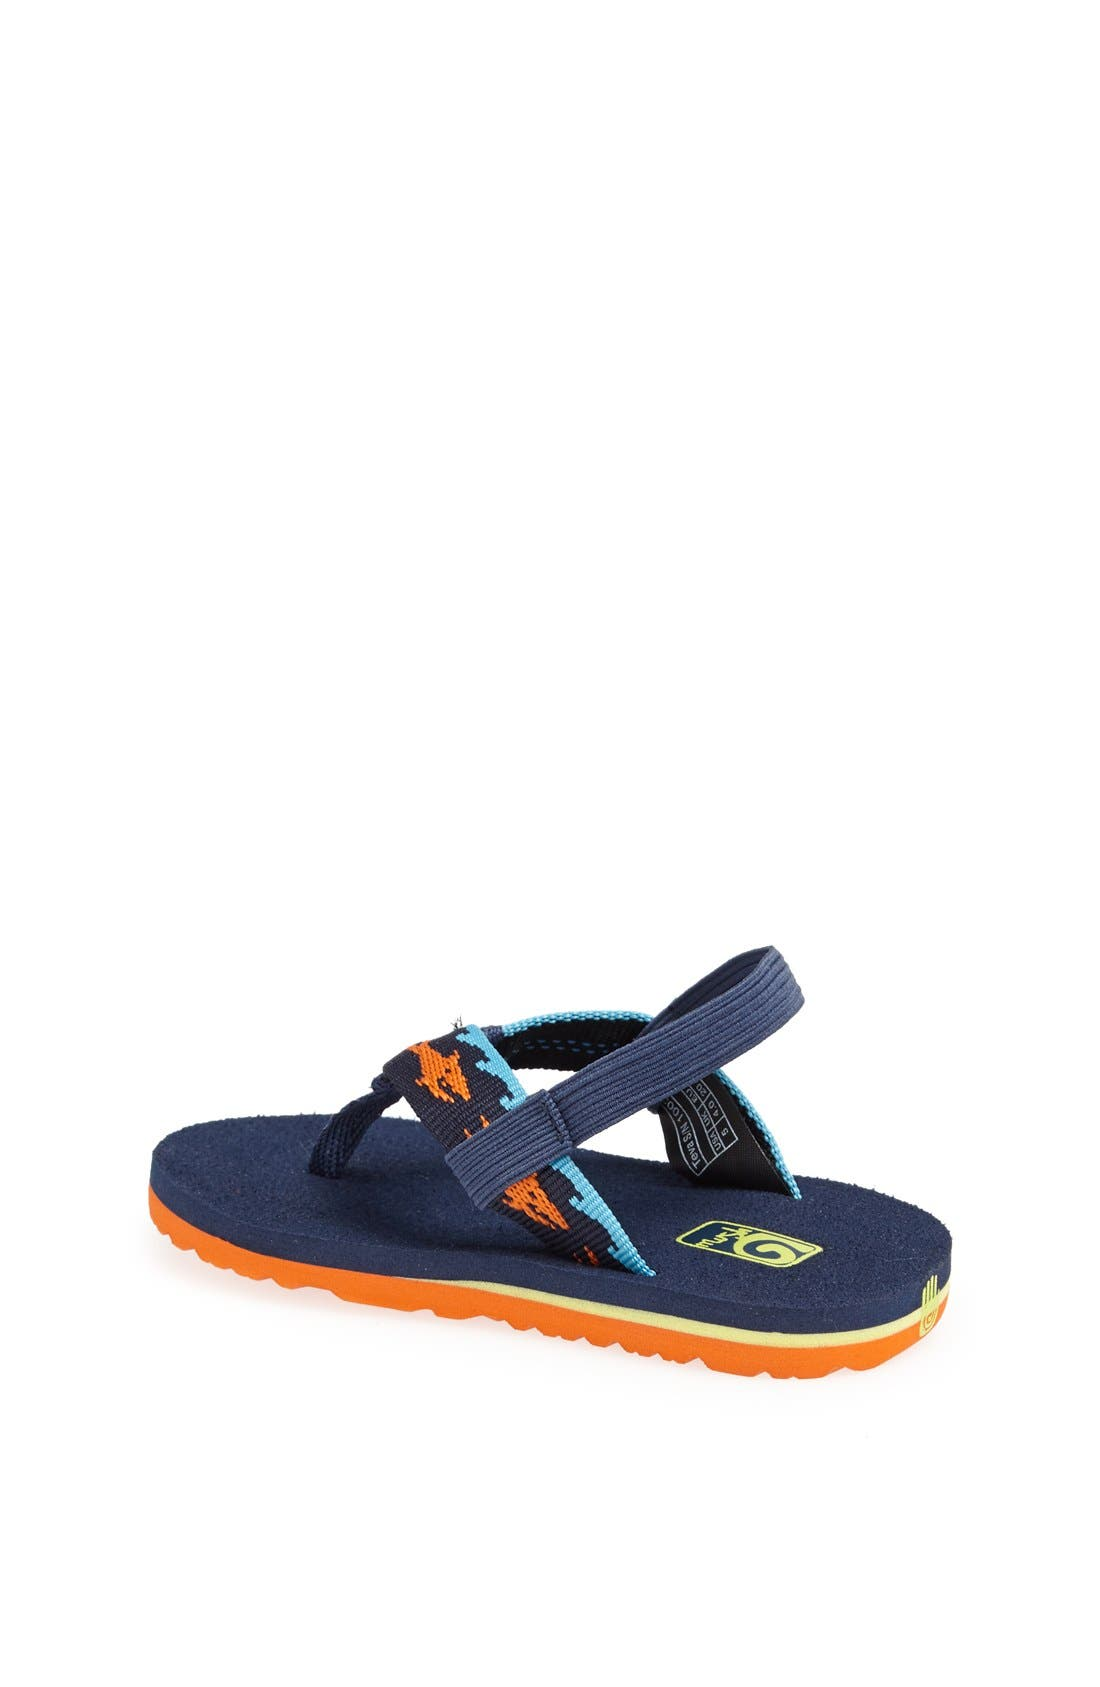 Alternate Image 2  - Teva 'Mush' Sandal (Baby & Walker)